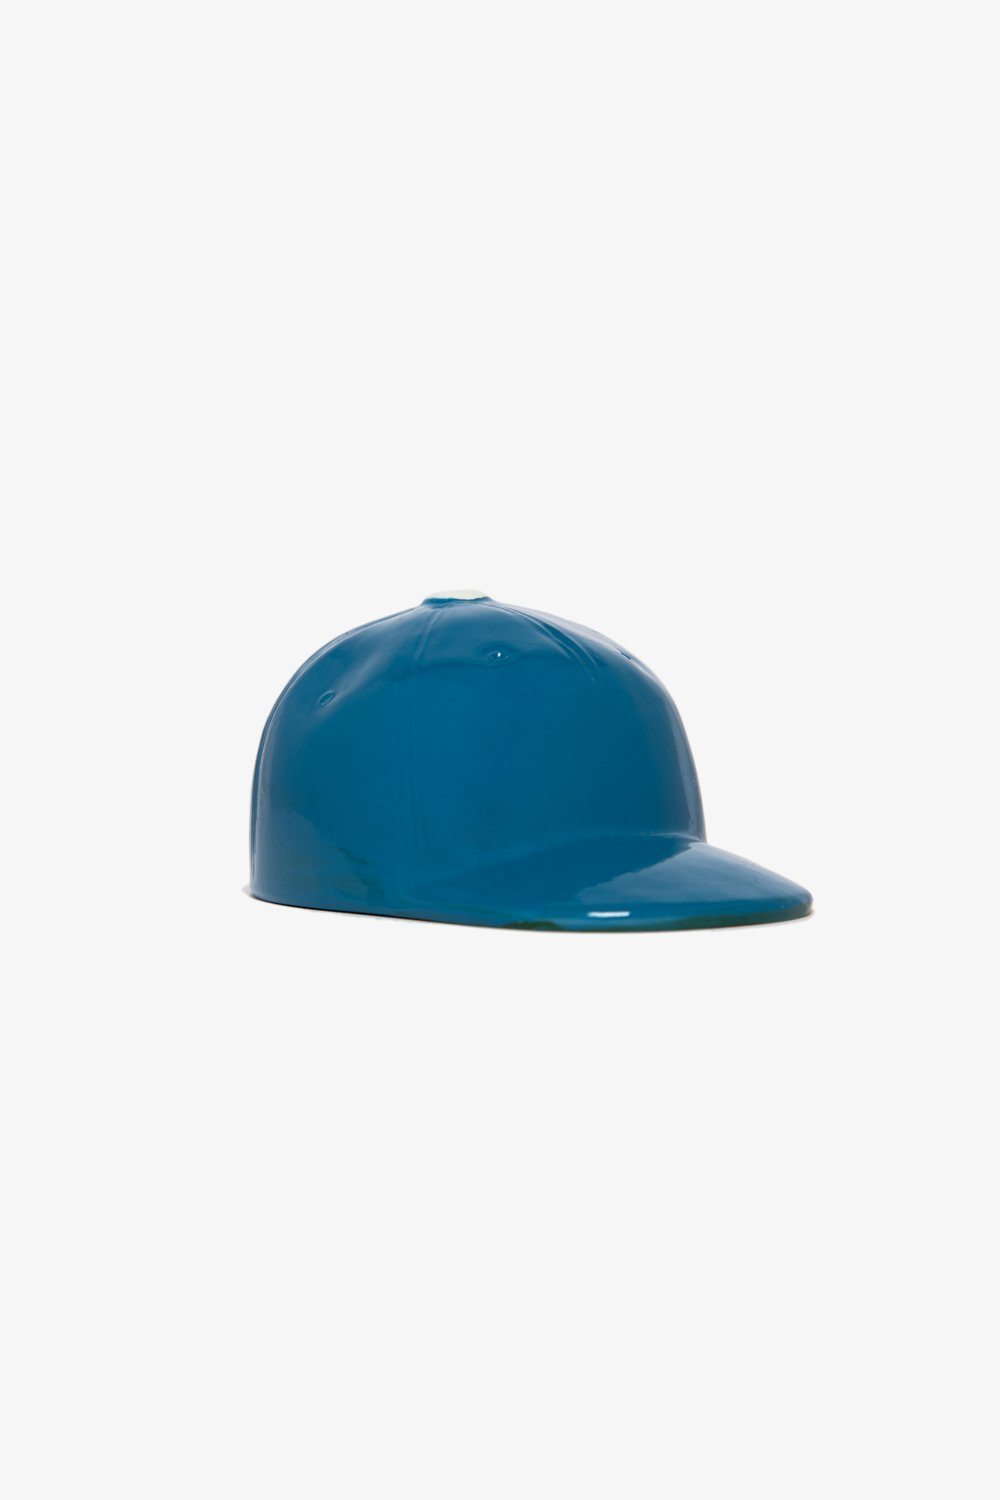 Ballcap Bottle Opener - Brooklyn Blue Jack + Mulligan